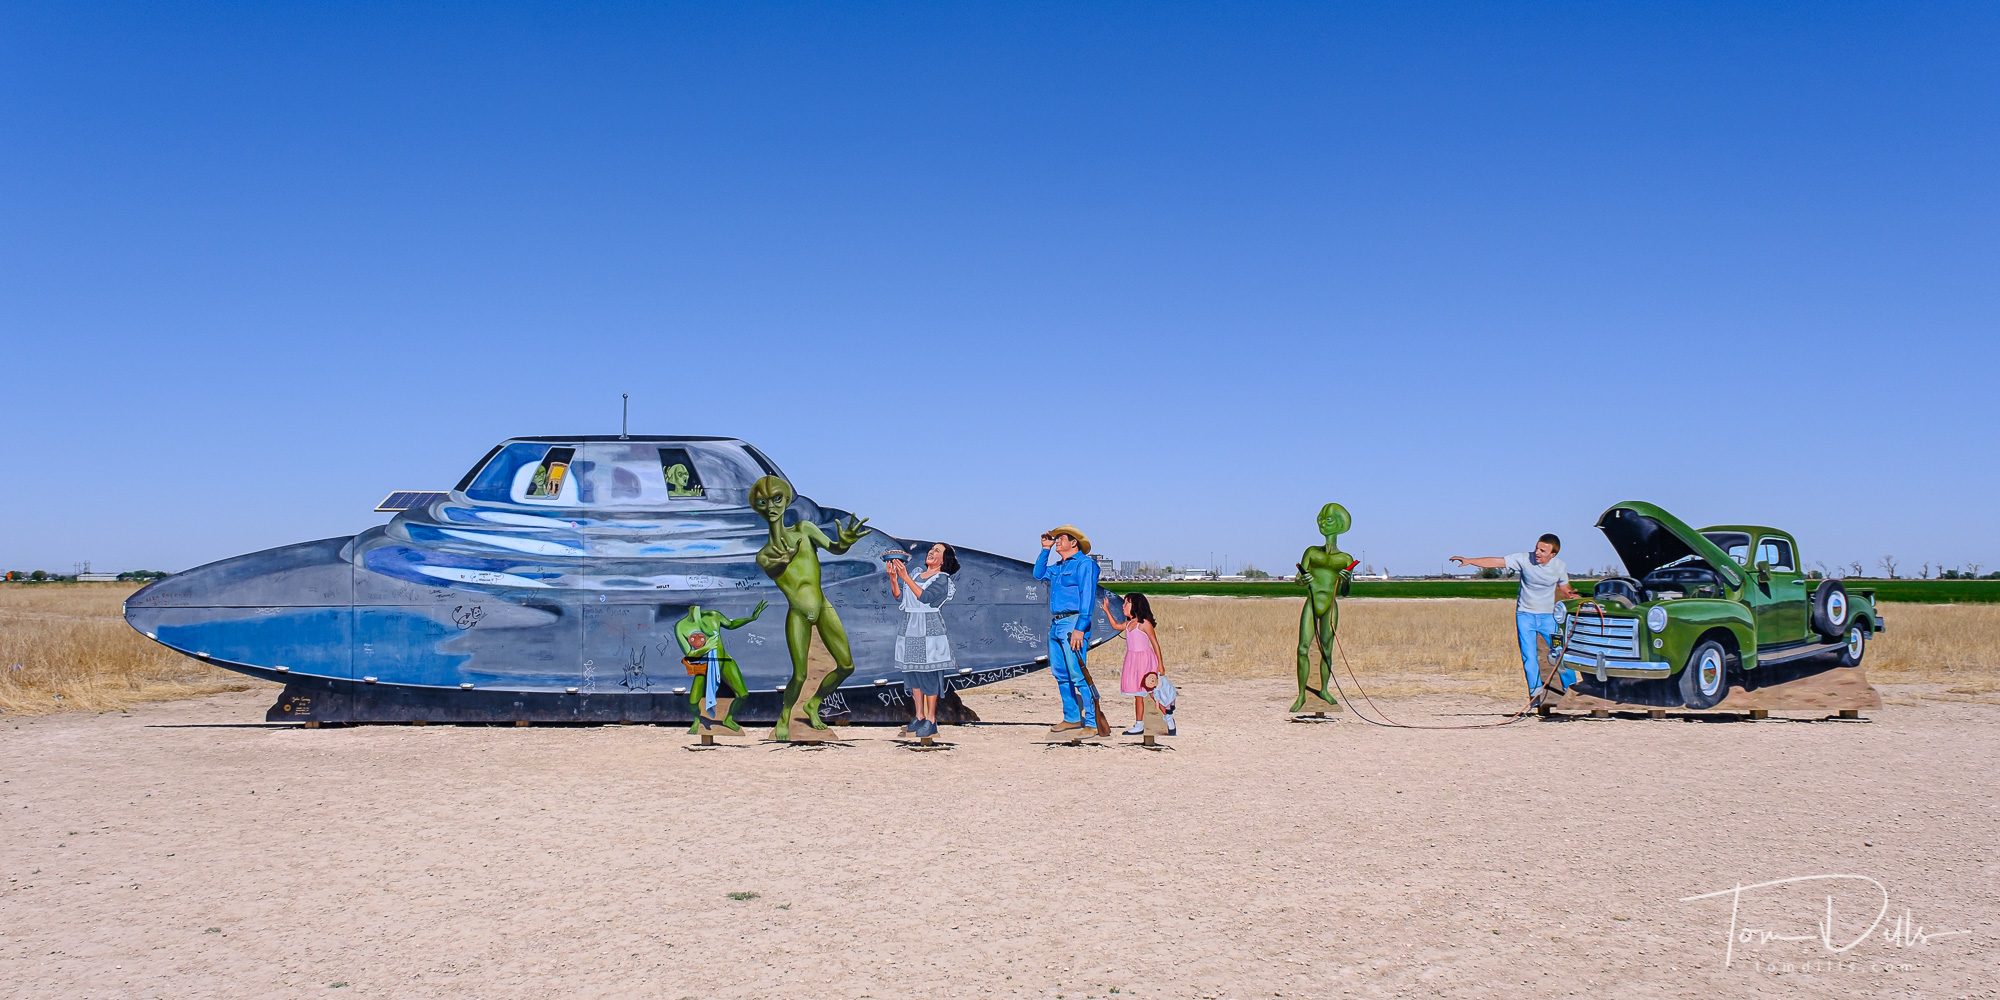 {quote}Welcome to Roswell{quote} art installation.  Roswell, New Mexico